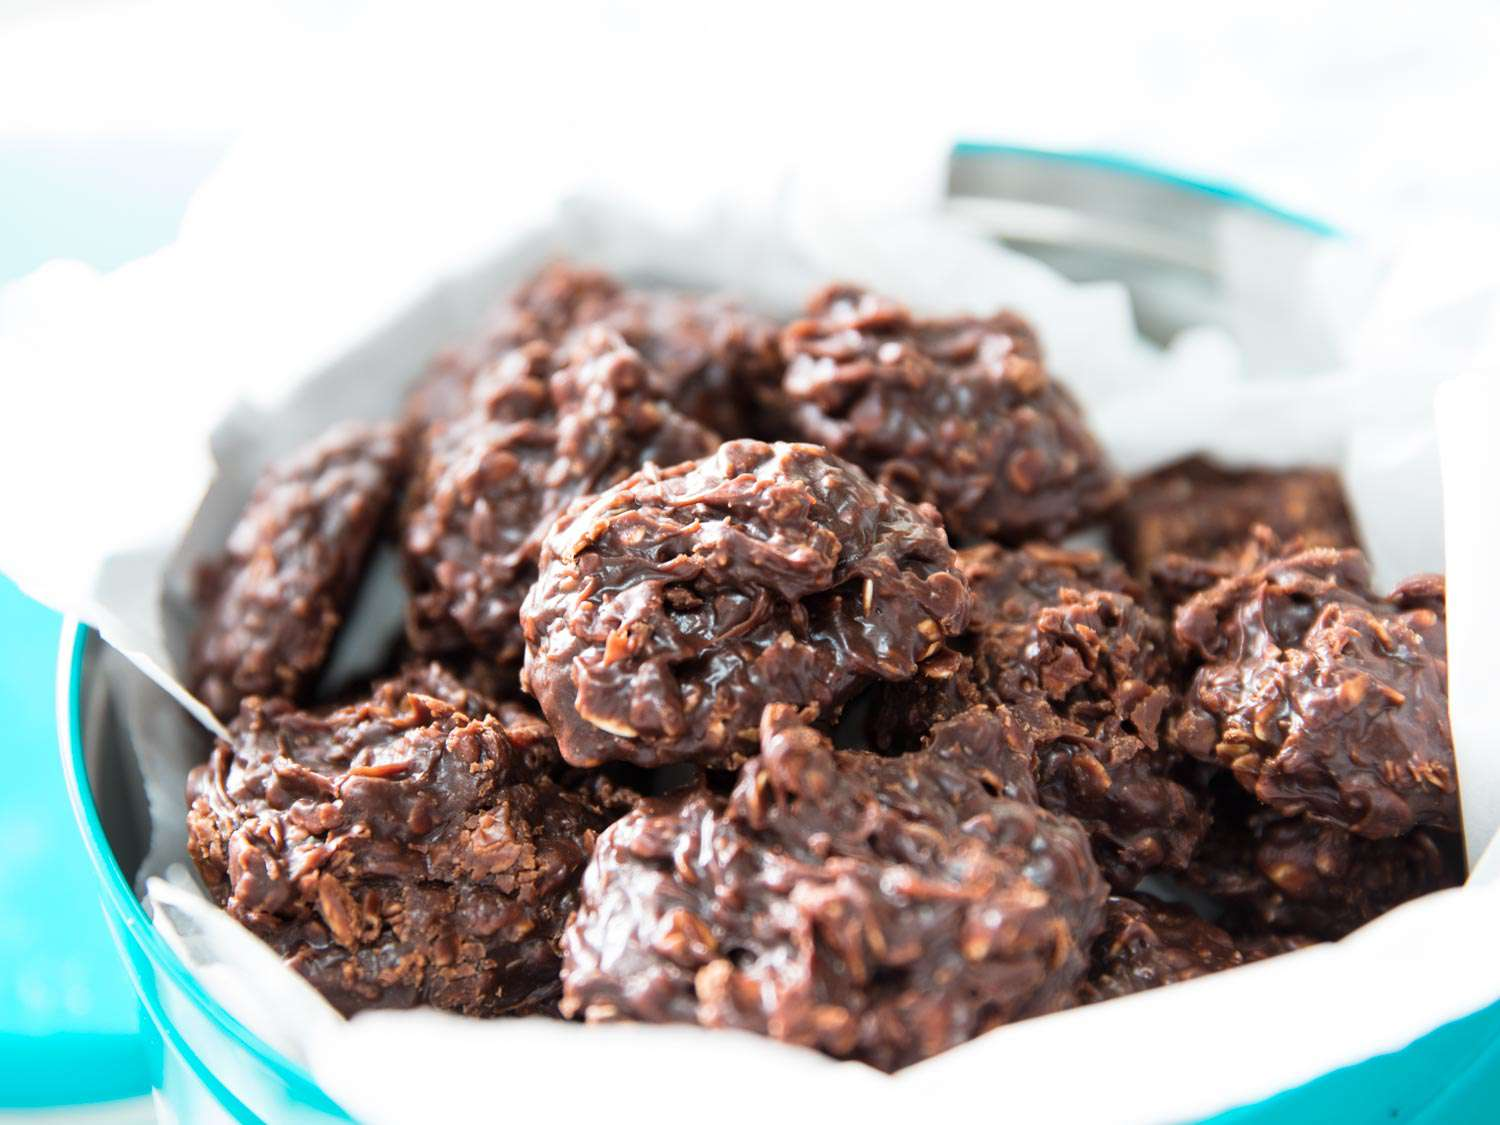 20171129-holiday-cookie-recipes-roundup-16.jpg